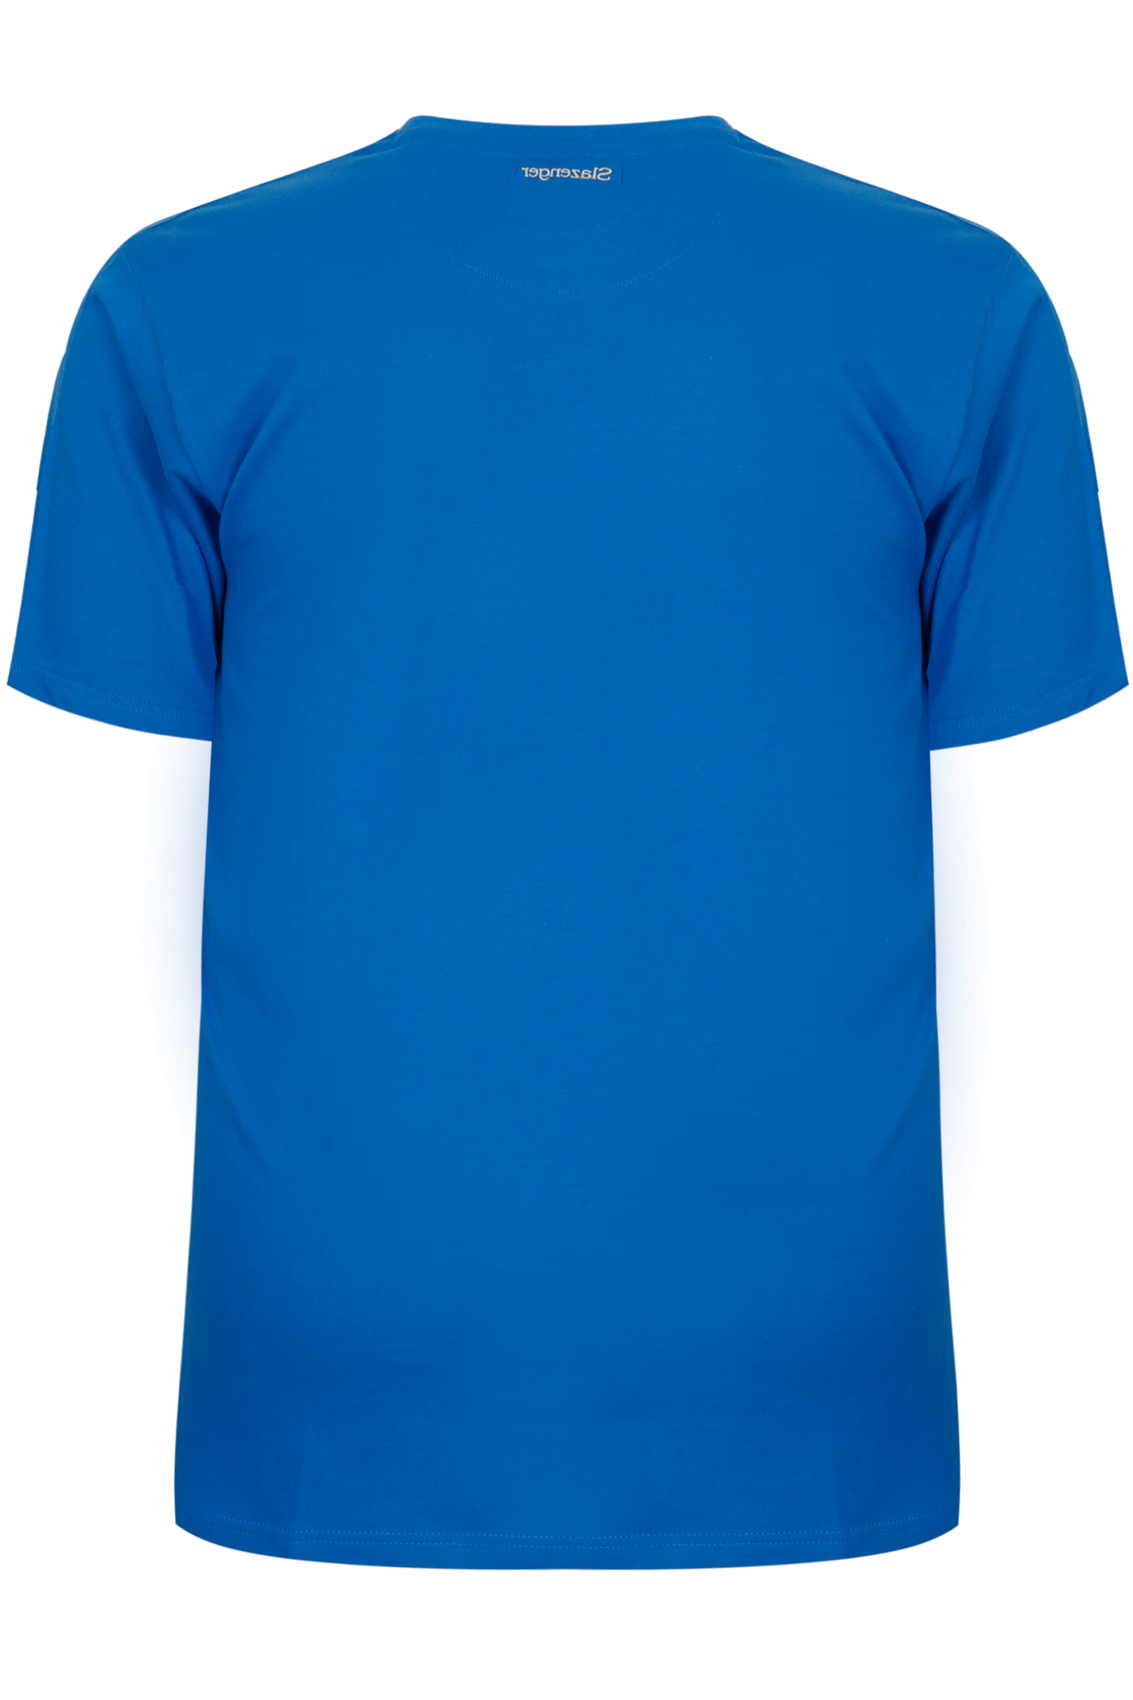 Find great deals on eBay for blue short sleeve shirt. Shop with confidence.